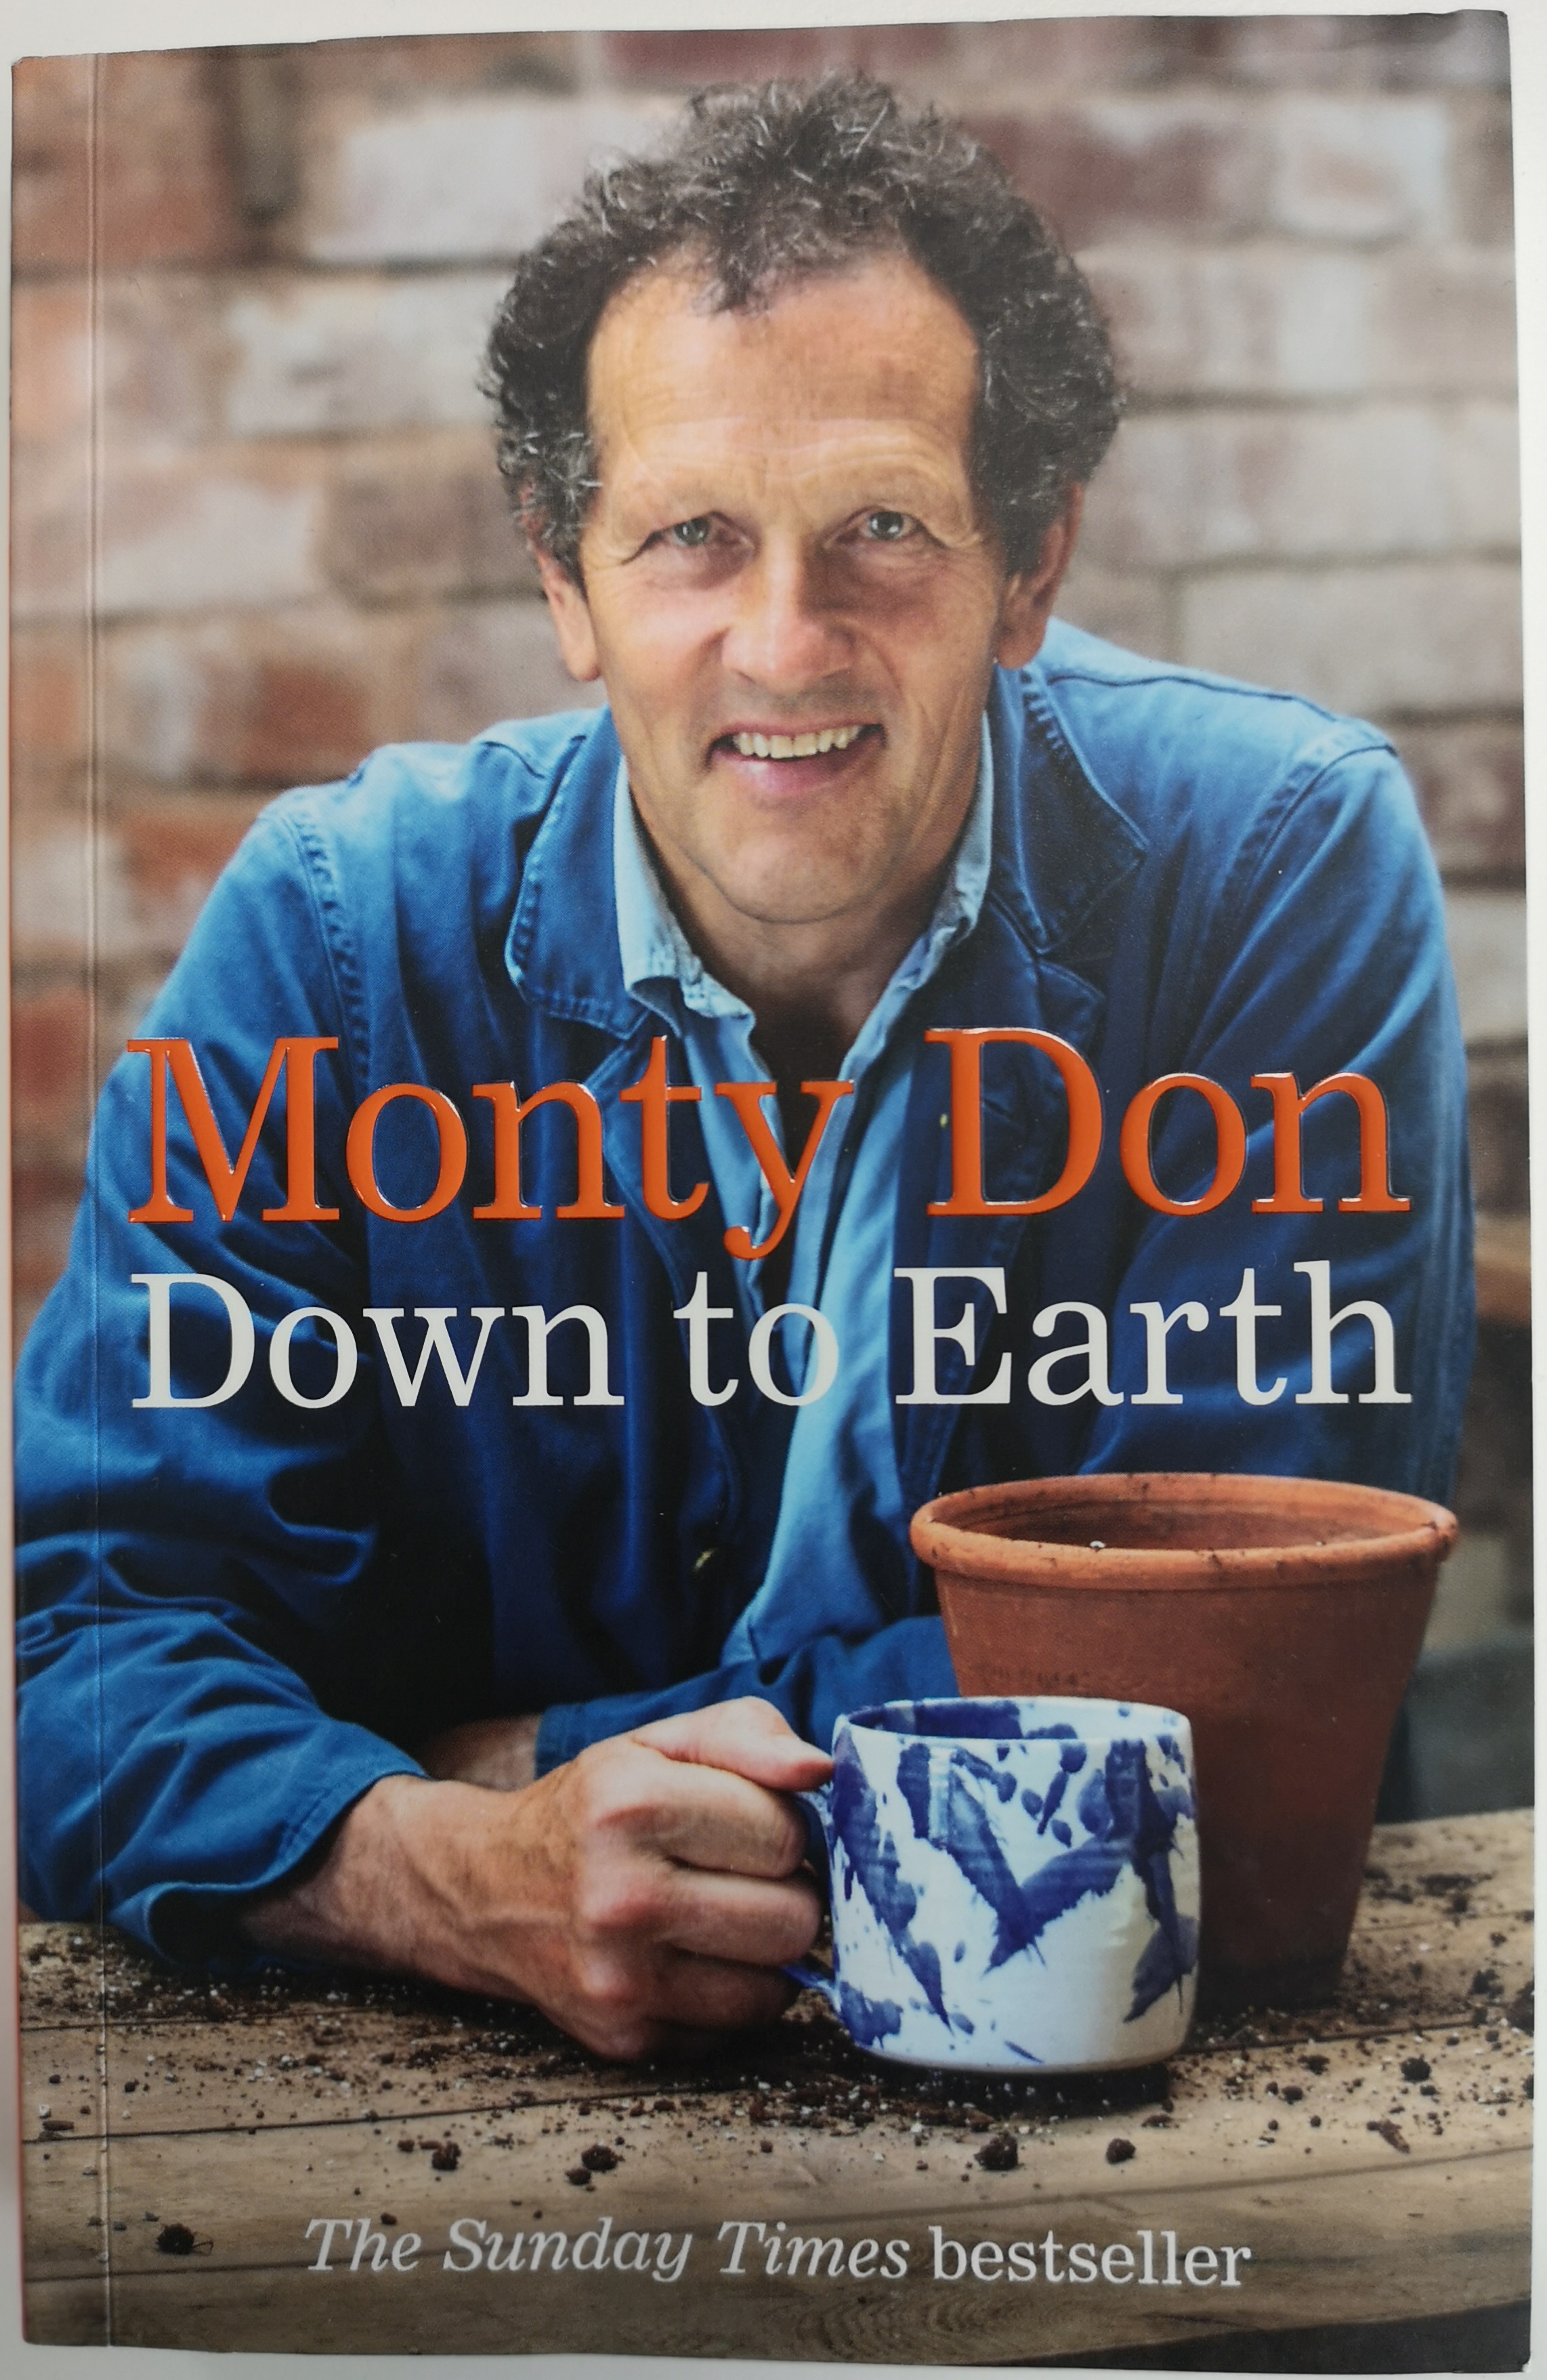 Monty Don: Down to Earth